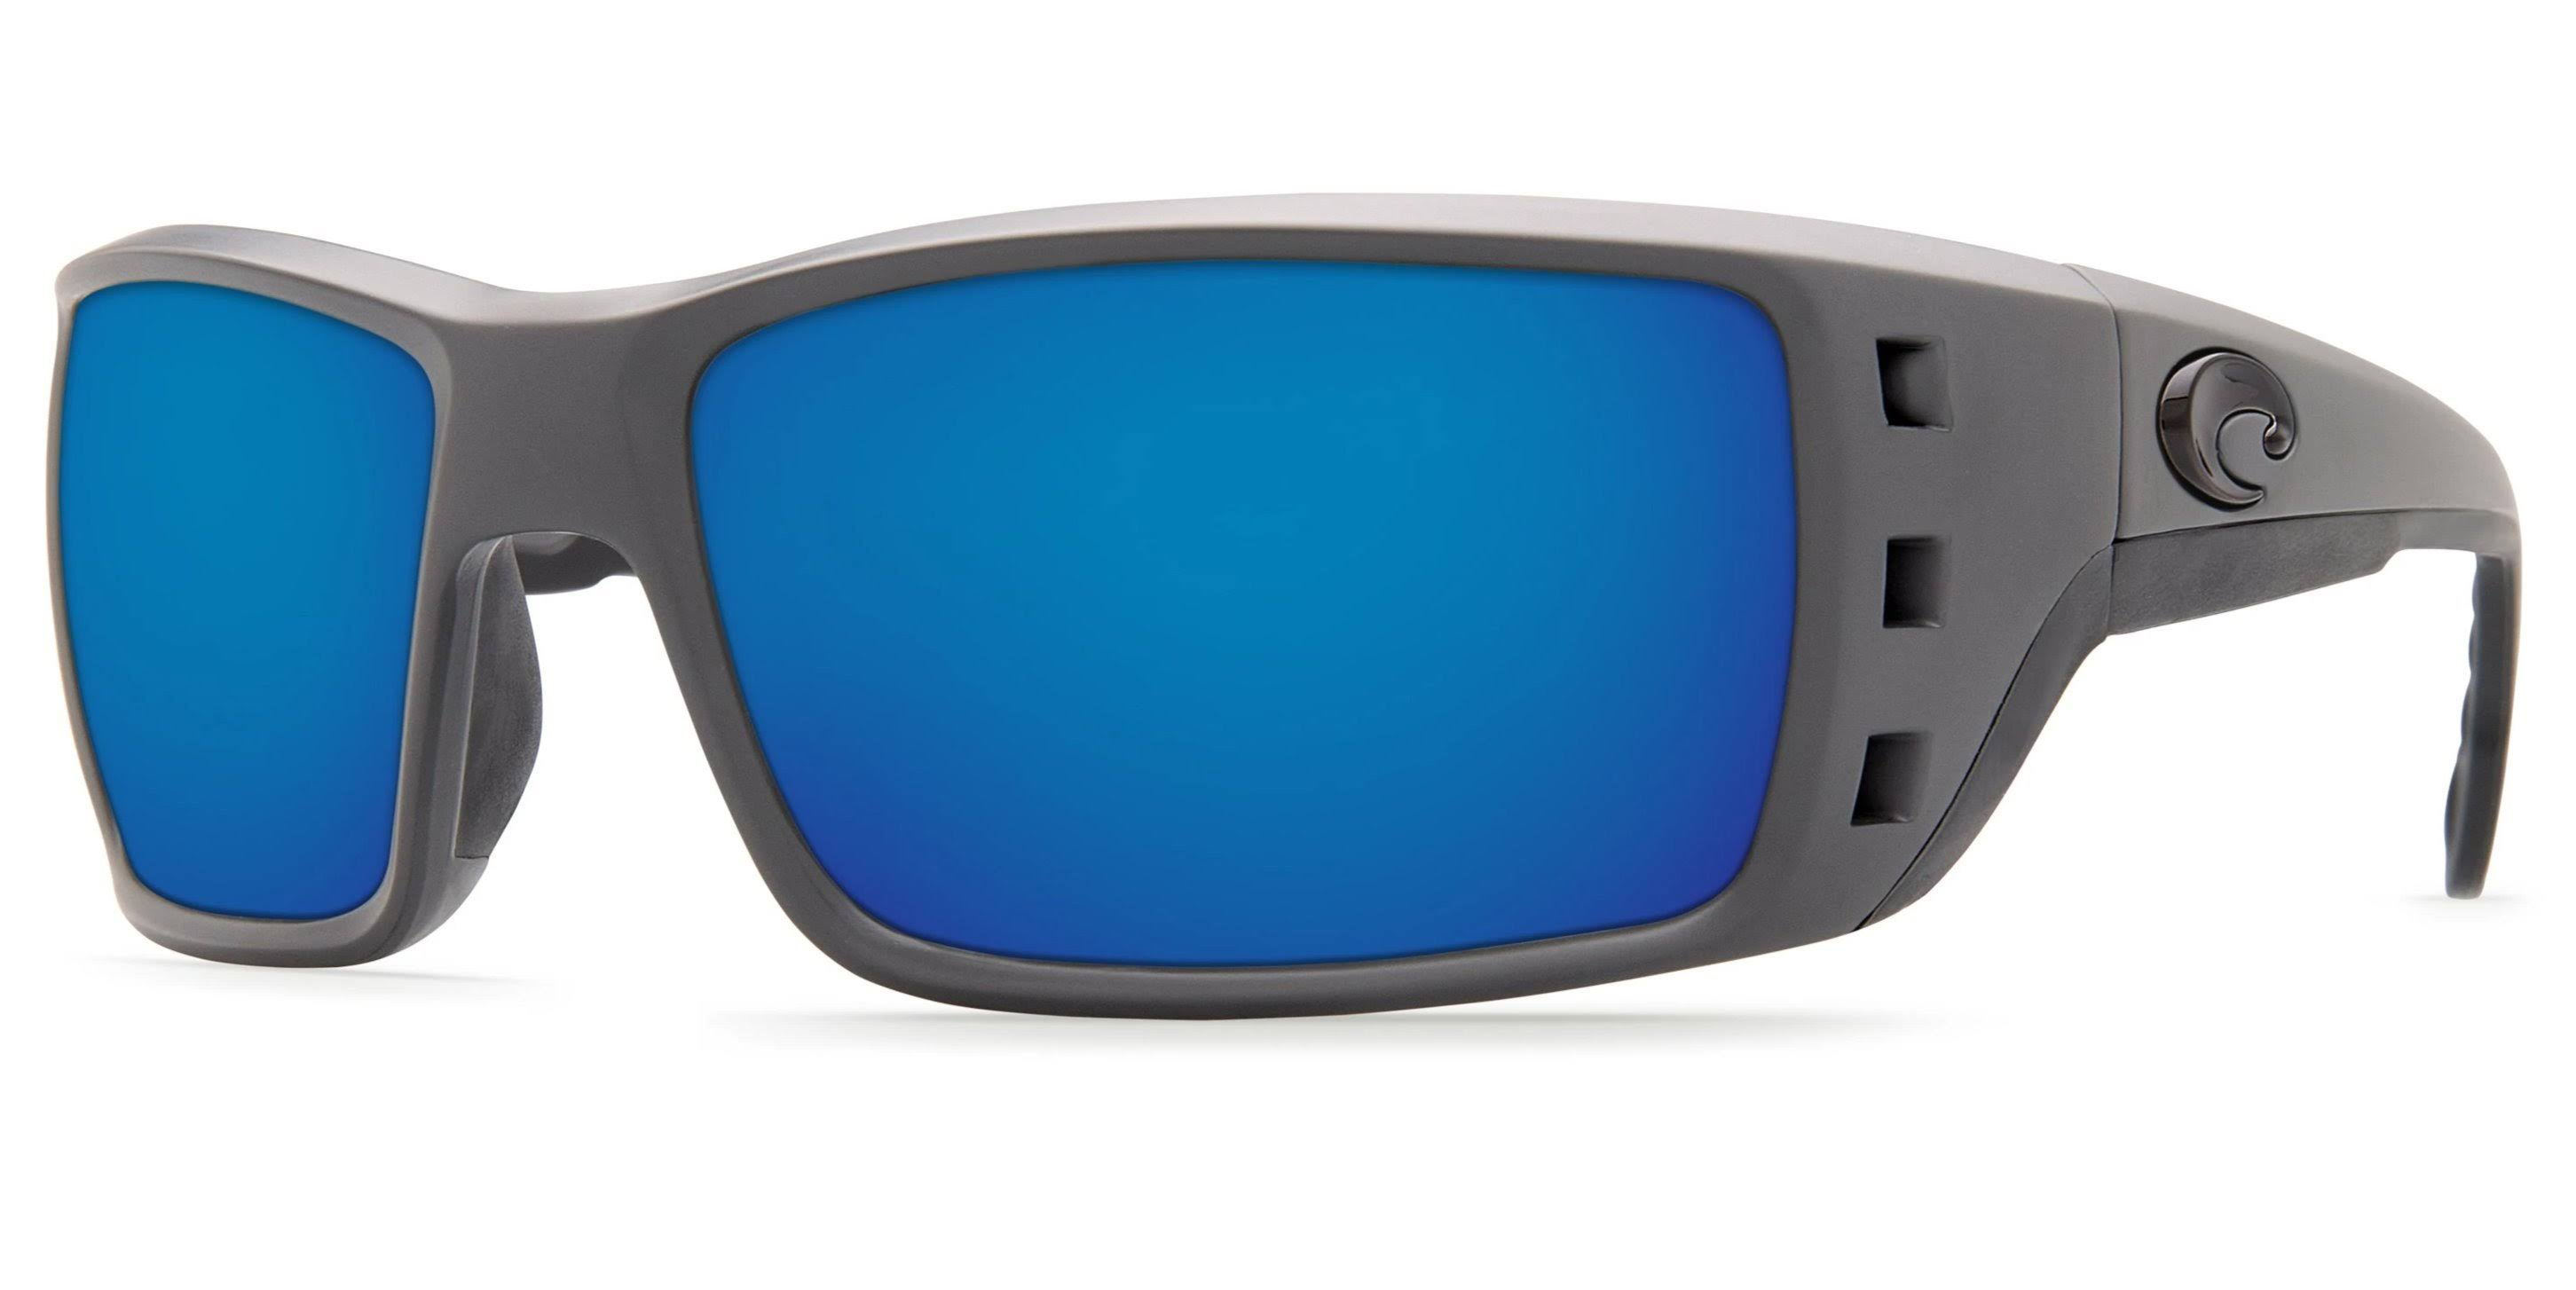 Costa Del Mar Polarized Permit Sunglasses - Matte Gray, Blue Mirror, 115mm